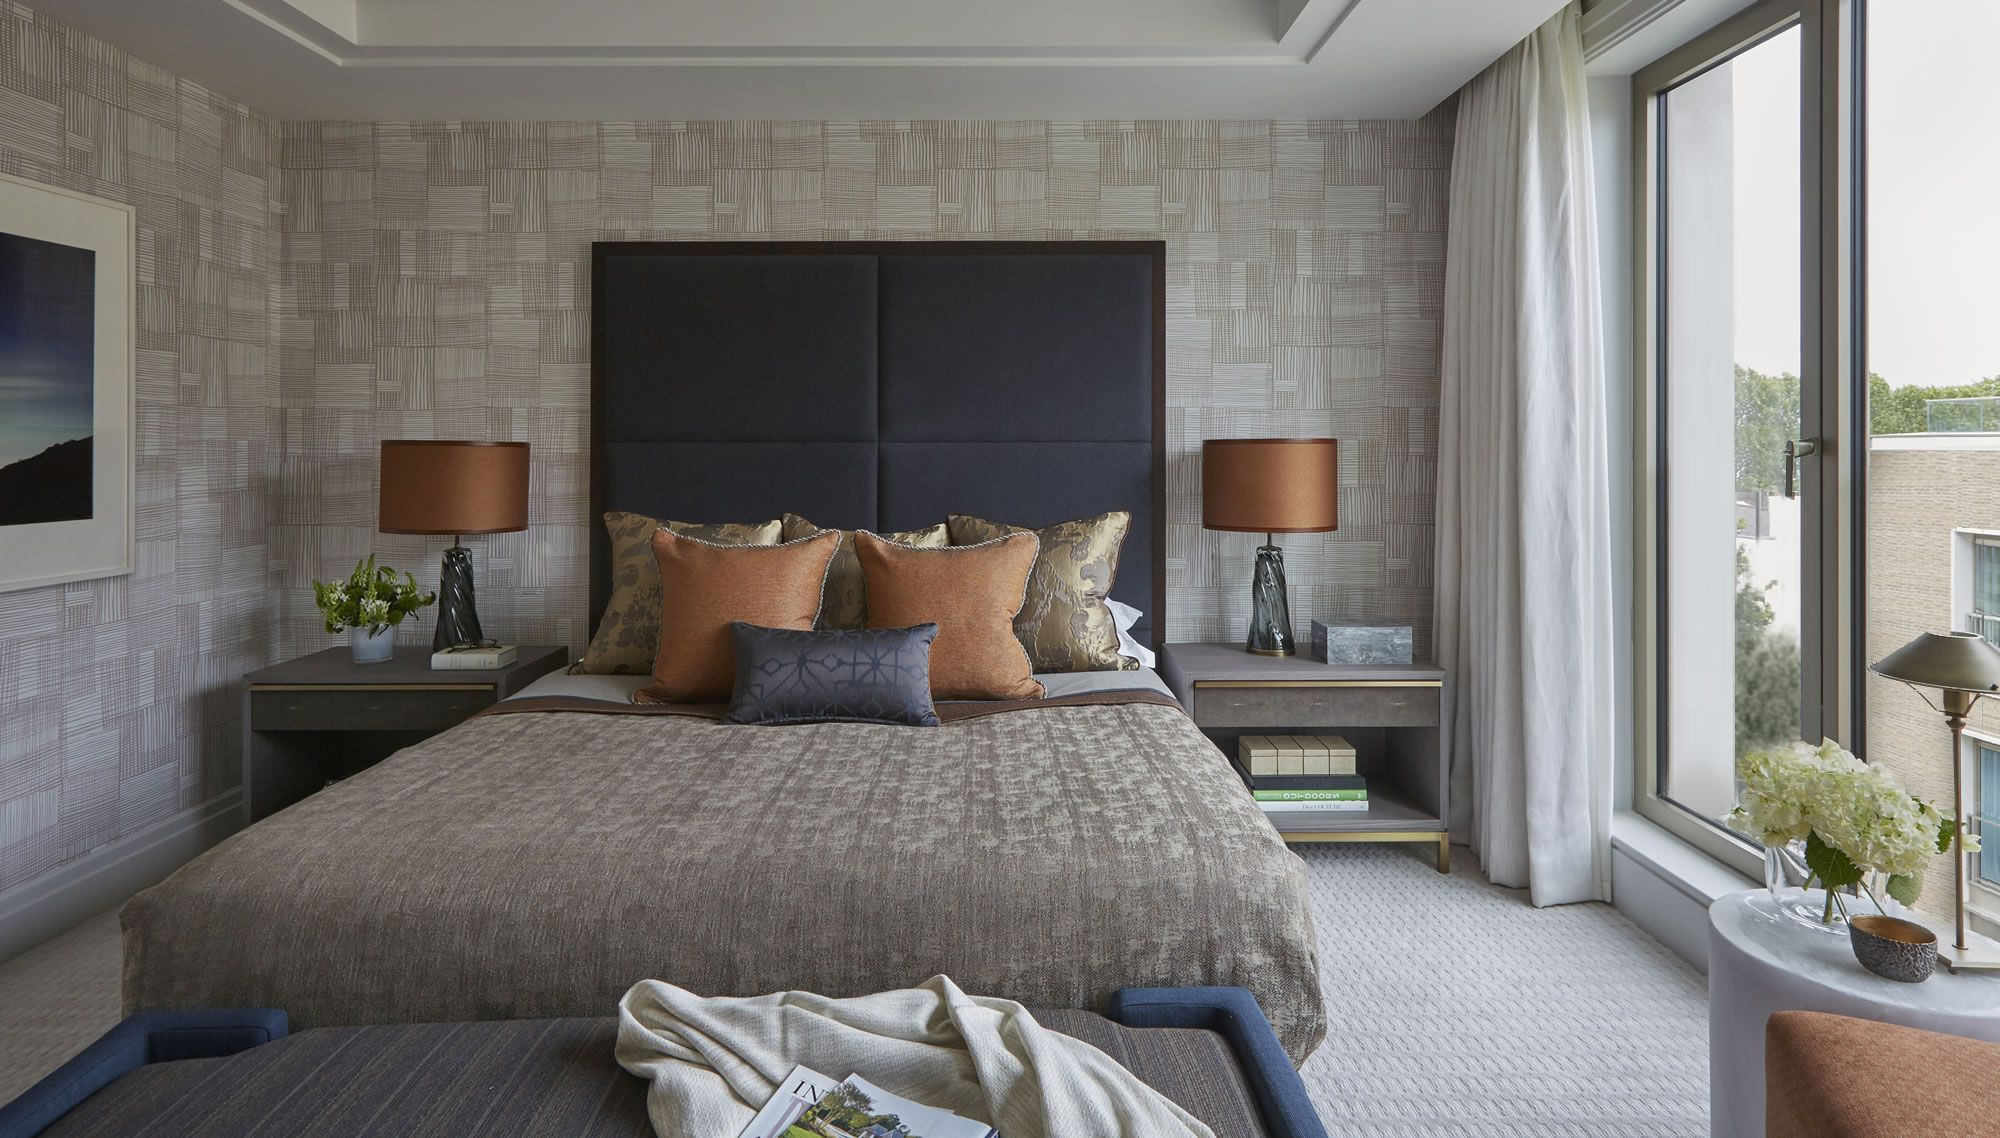 Helen Green - Lateral Apartment, Belgravia | dormitorio | Pinterest ...